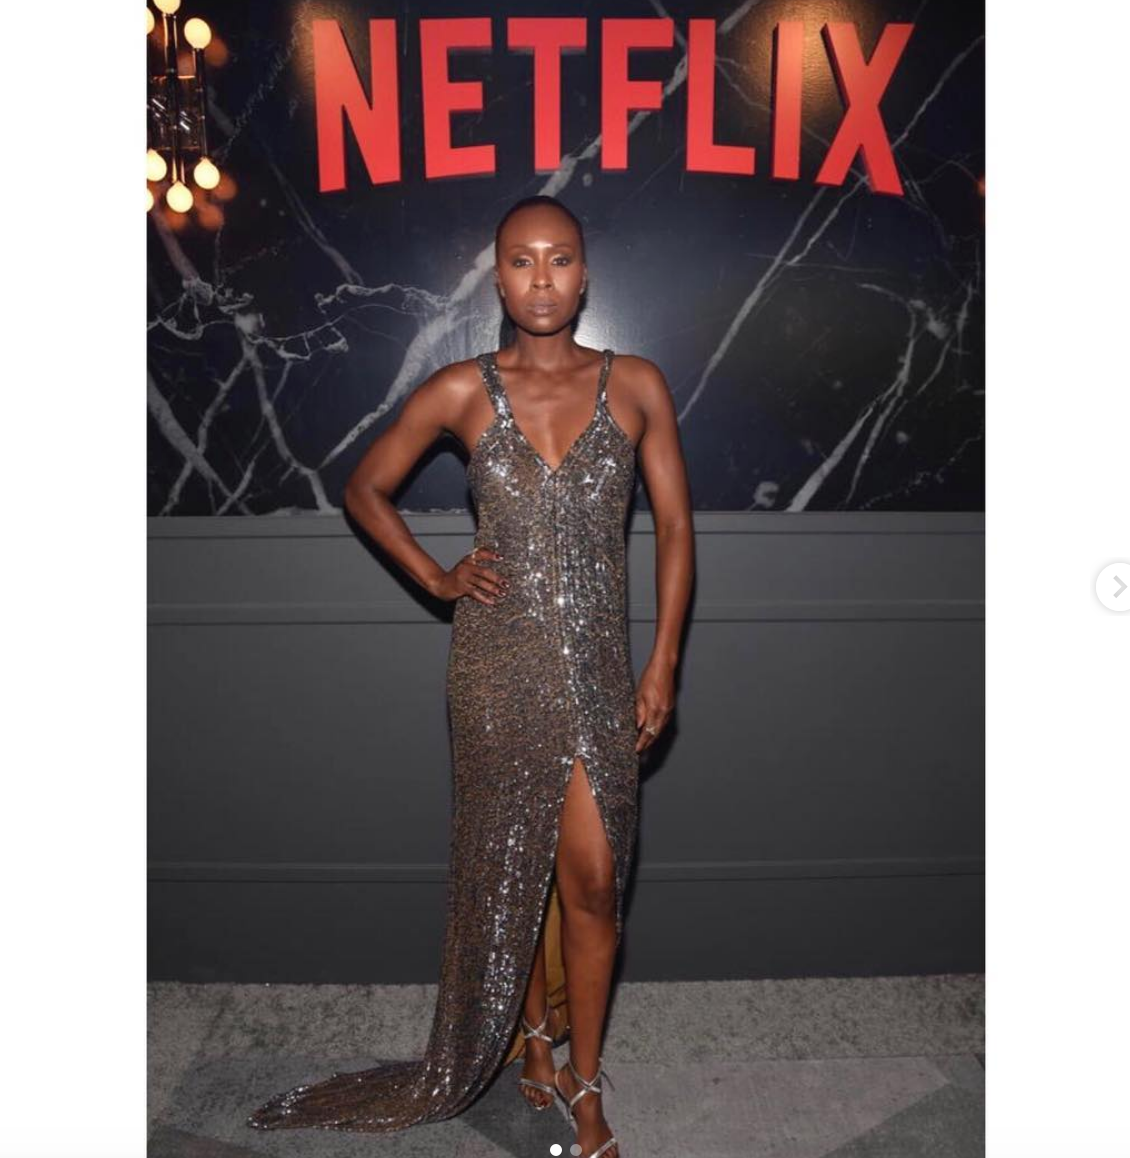 @netflix star from Emmy awards nominee hit tv show  @glownetflix   @sydellio  looking radiant at the  @netflix  Emmy awards after party red carpet wearing our designer from Germany  @anyaliesnik  styled by  @deborahfergusonstylist  fashion provided by  #ivanbittonstylehouse